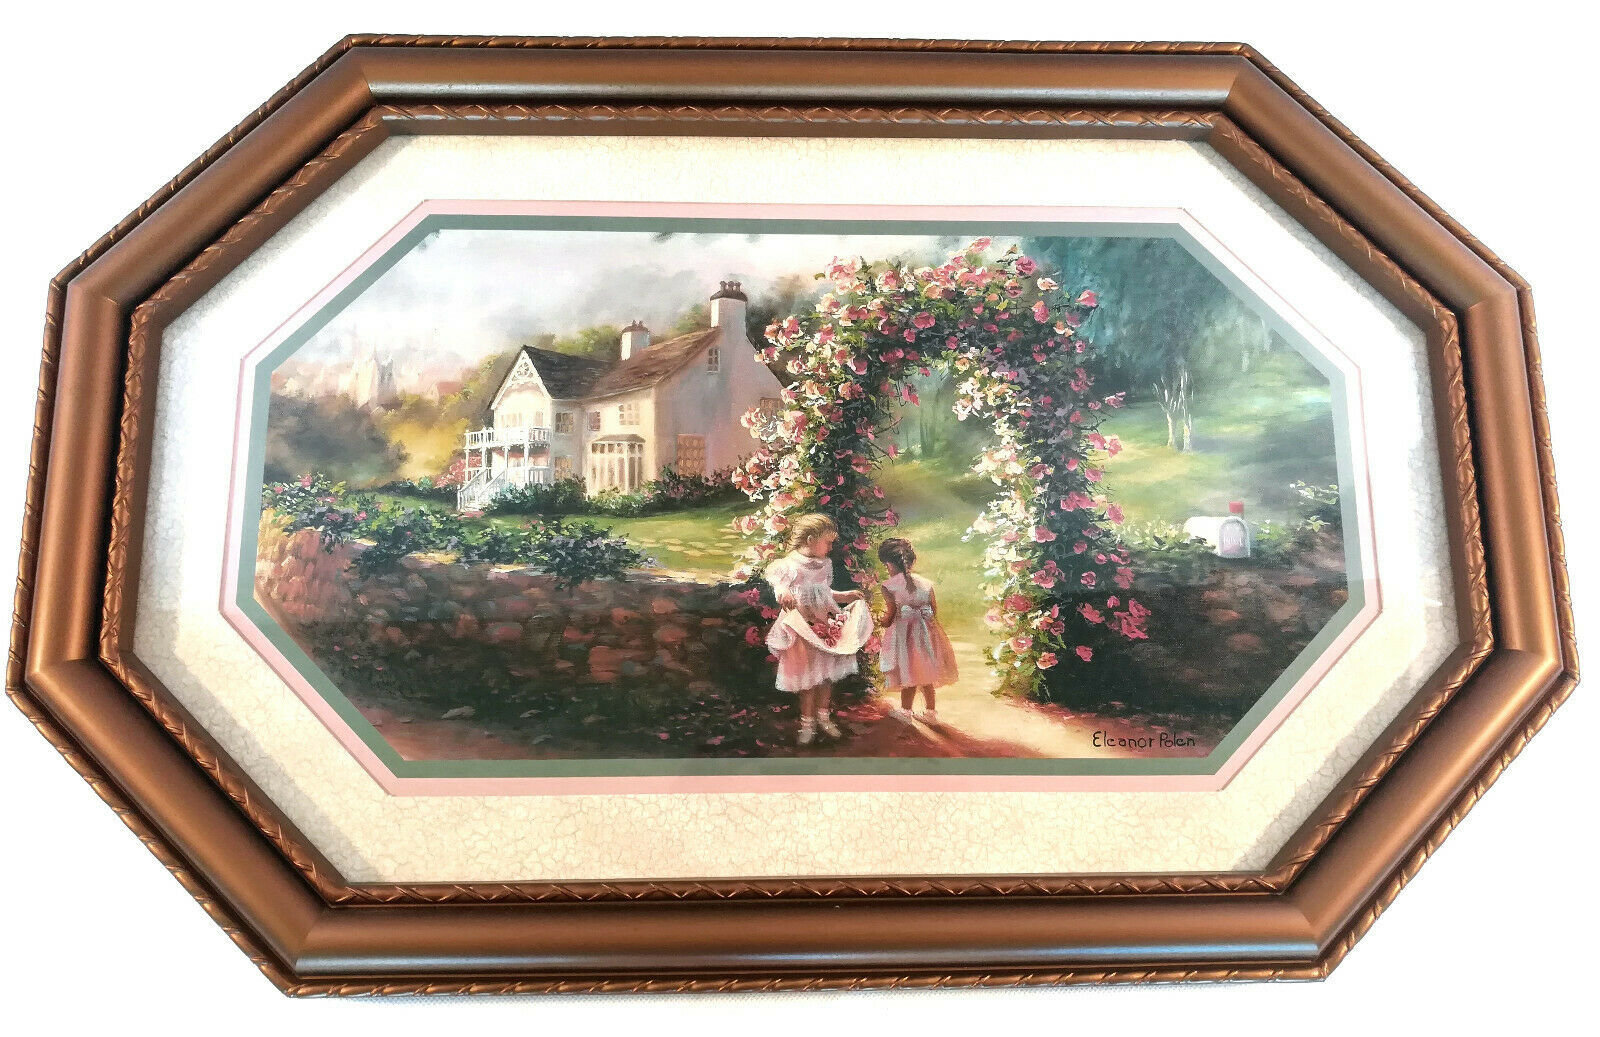 Primary image for Eleanor Polen Rose Arbor Cottage Girls Litho Homco Print Syroco Frame Wall Art